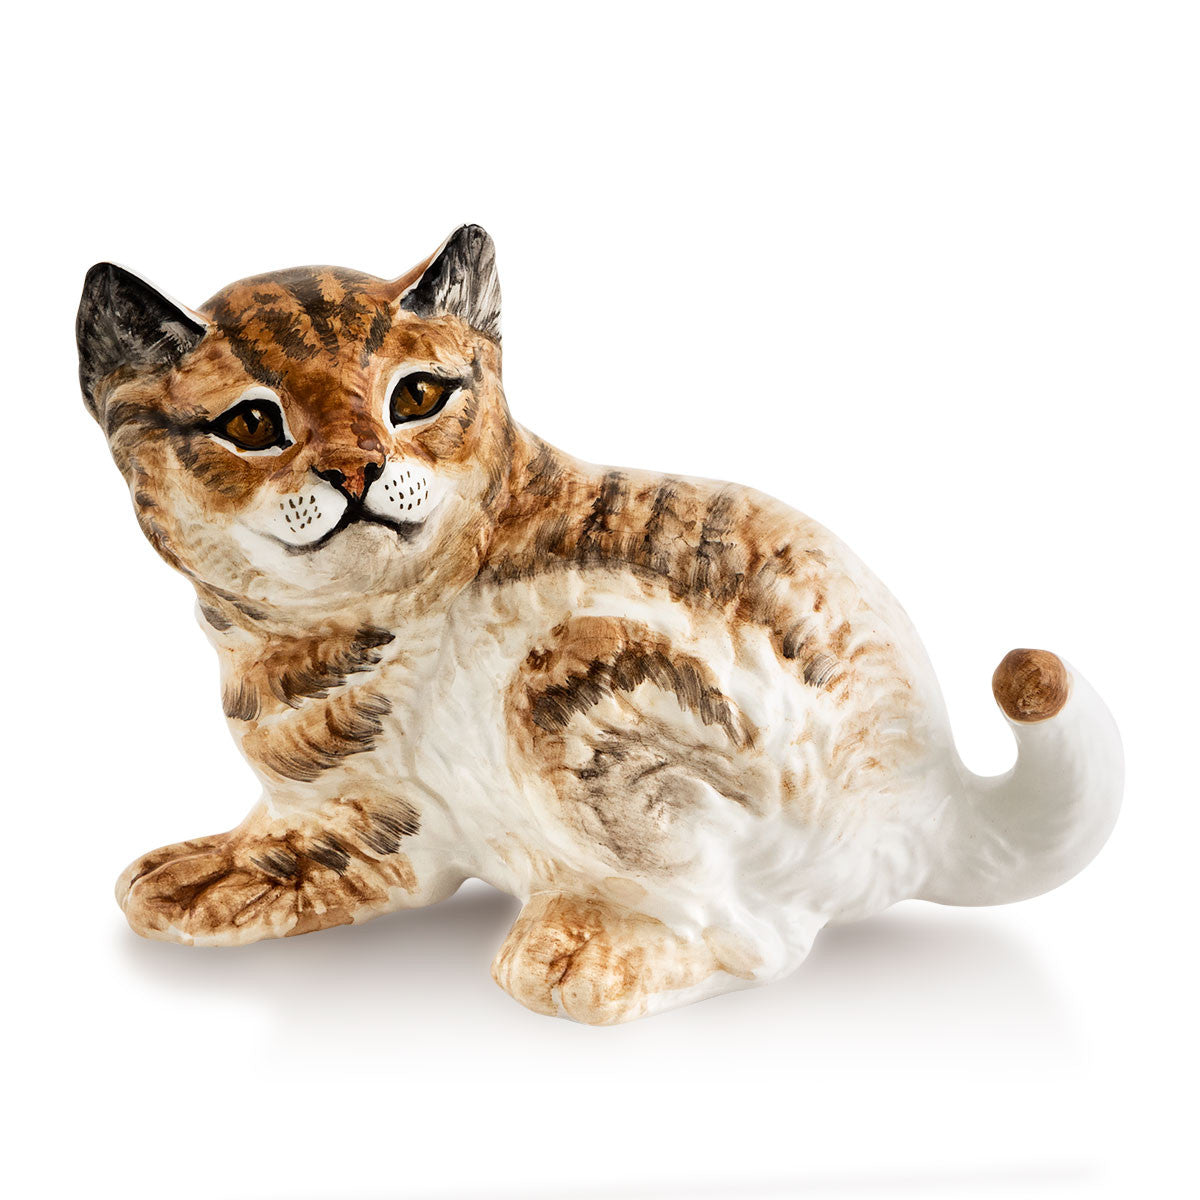 Hand Painted Italian Ceramic baby tiger figurines-gifts for feline lovers-Country decor